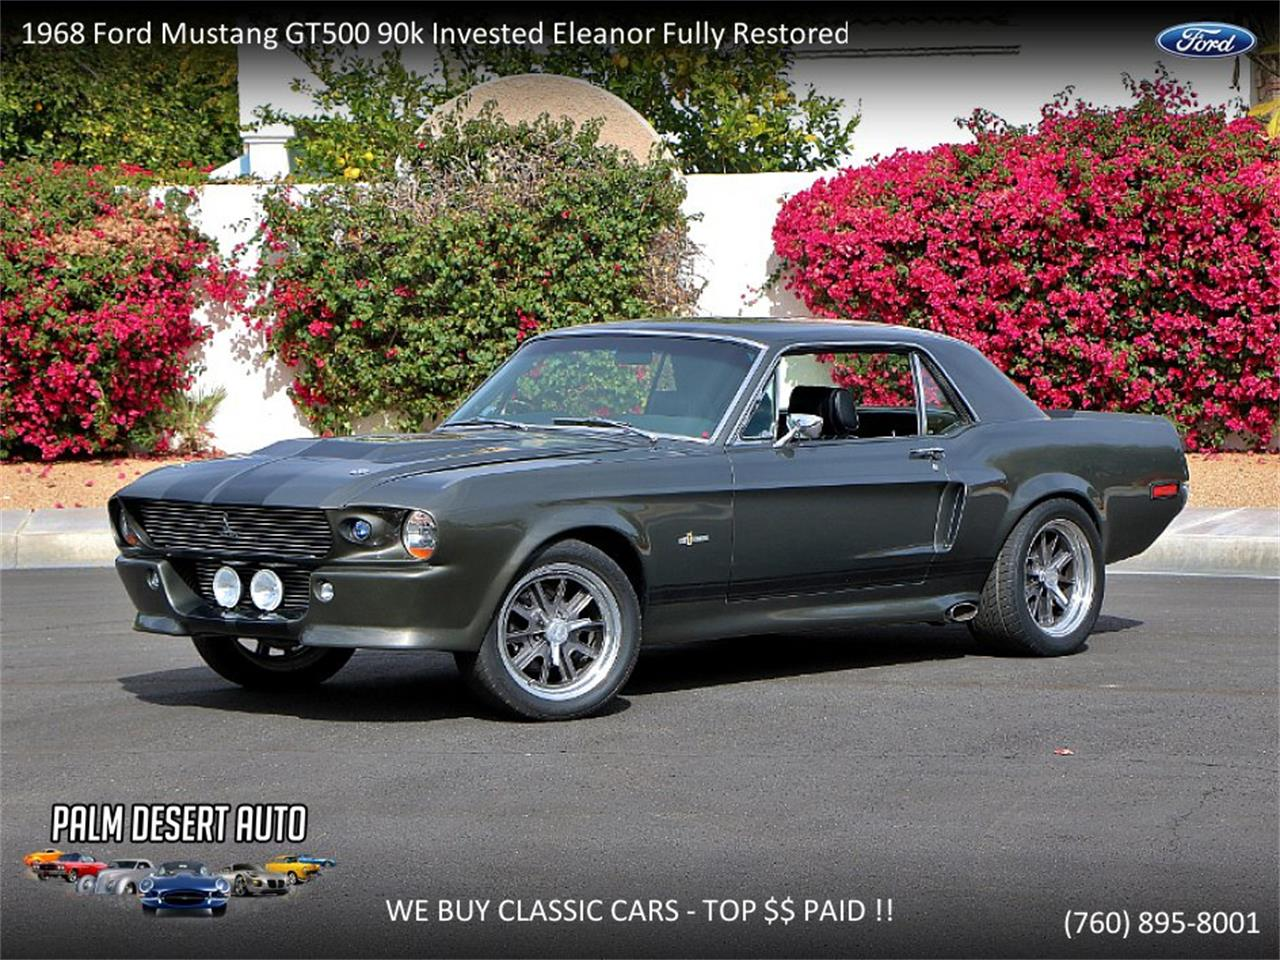 68 Shelby Gt500 >> For Sale 1968 Ford Mustang Shelby Gt500 In Palm Desert California